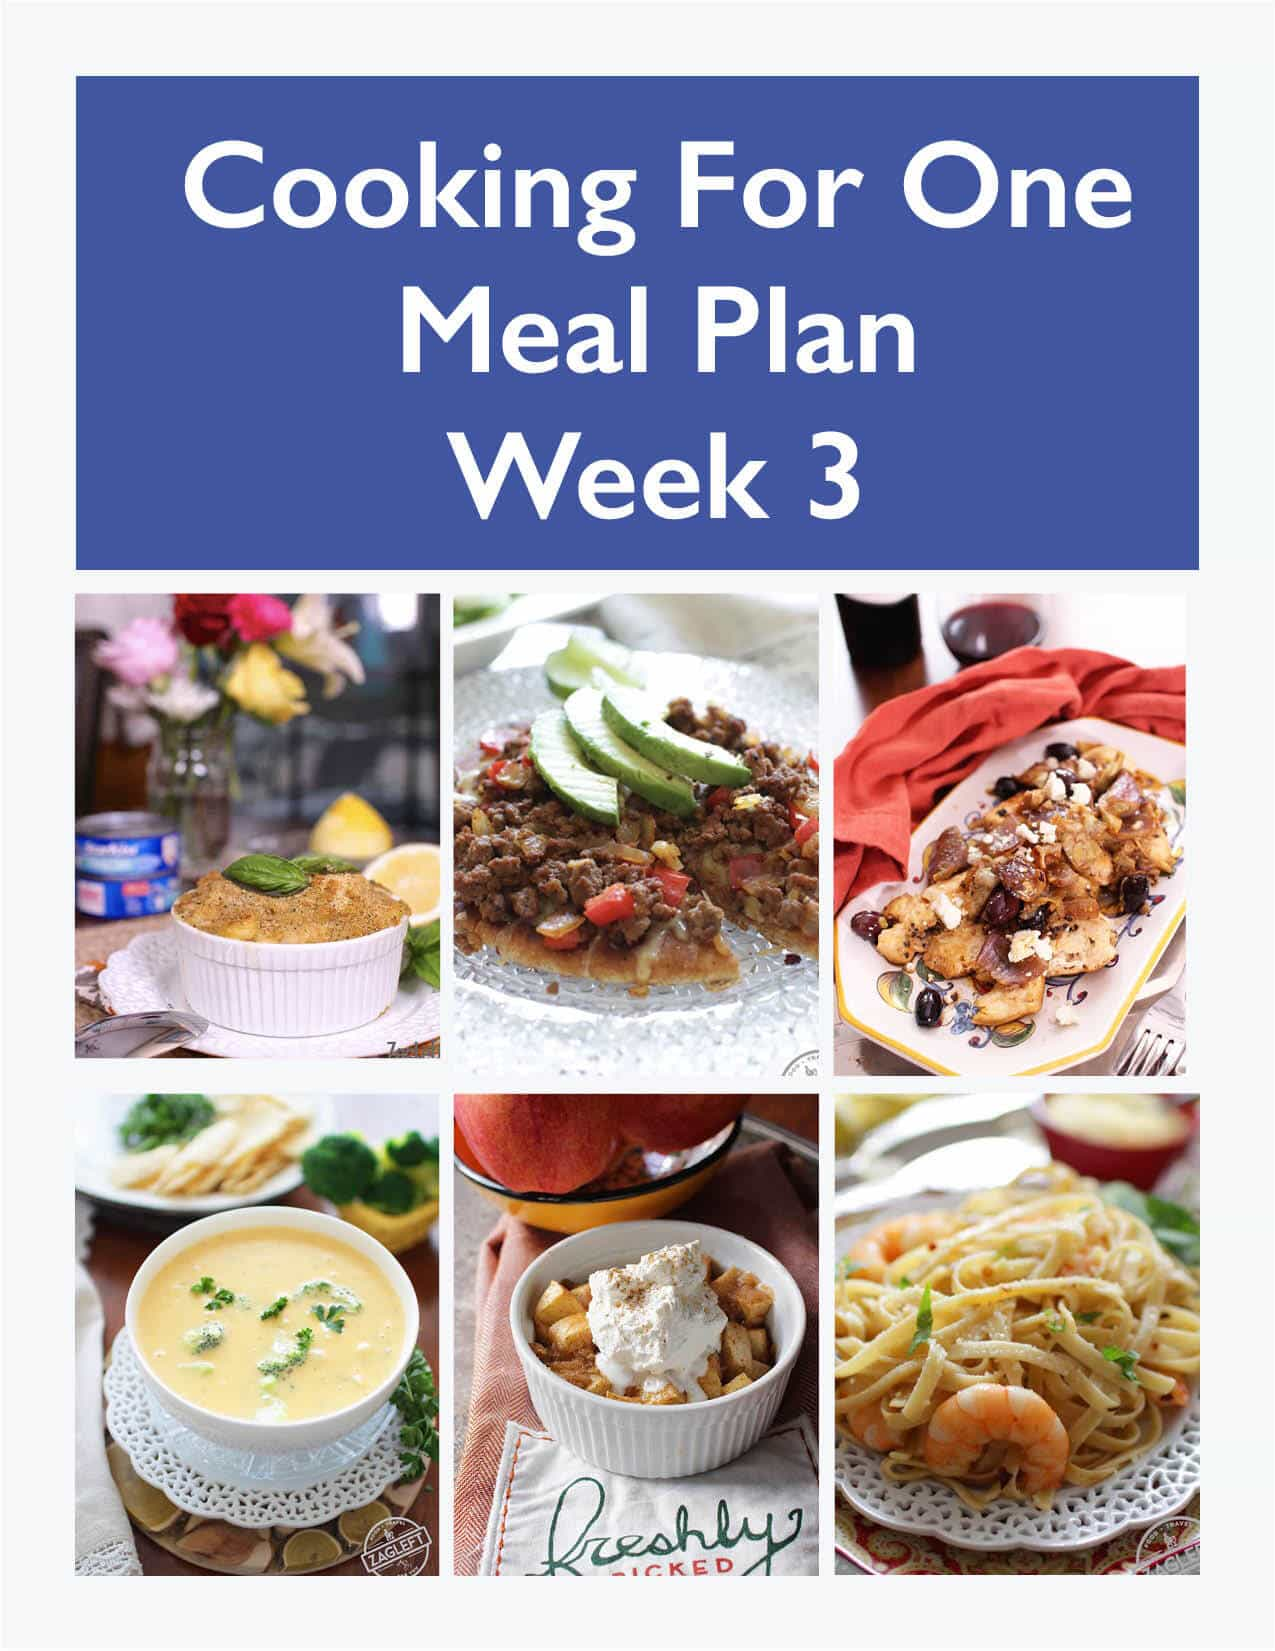 ThisCooking For One Meal Plan, Week 3includes recipes, a grocery list and cooking tips. These meal plans are ideal for anyone cooking for one or two people andis designed for people who live on their own, a parent who wants to indulge themselves while their kids have their favorites, couples that can't agree on what they want for dinner or caregivers providing meals to a parent or friend. | One Dish Kitchen